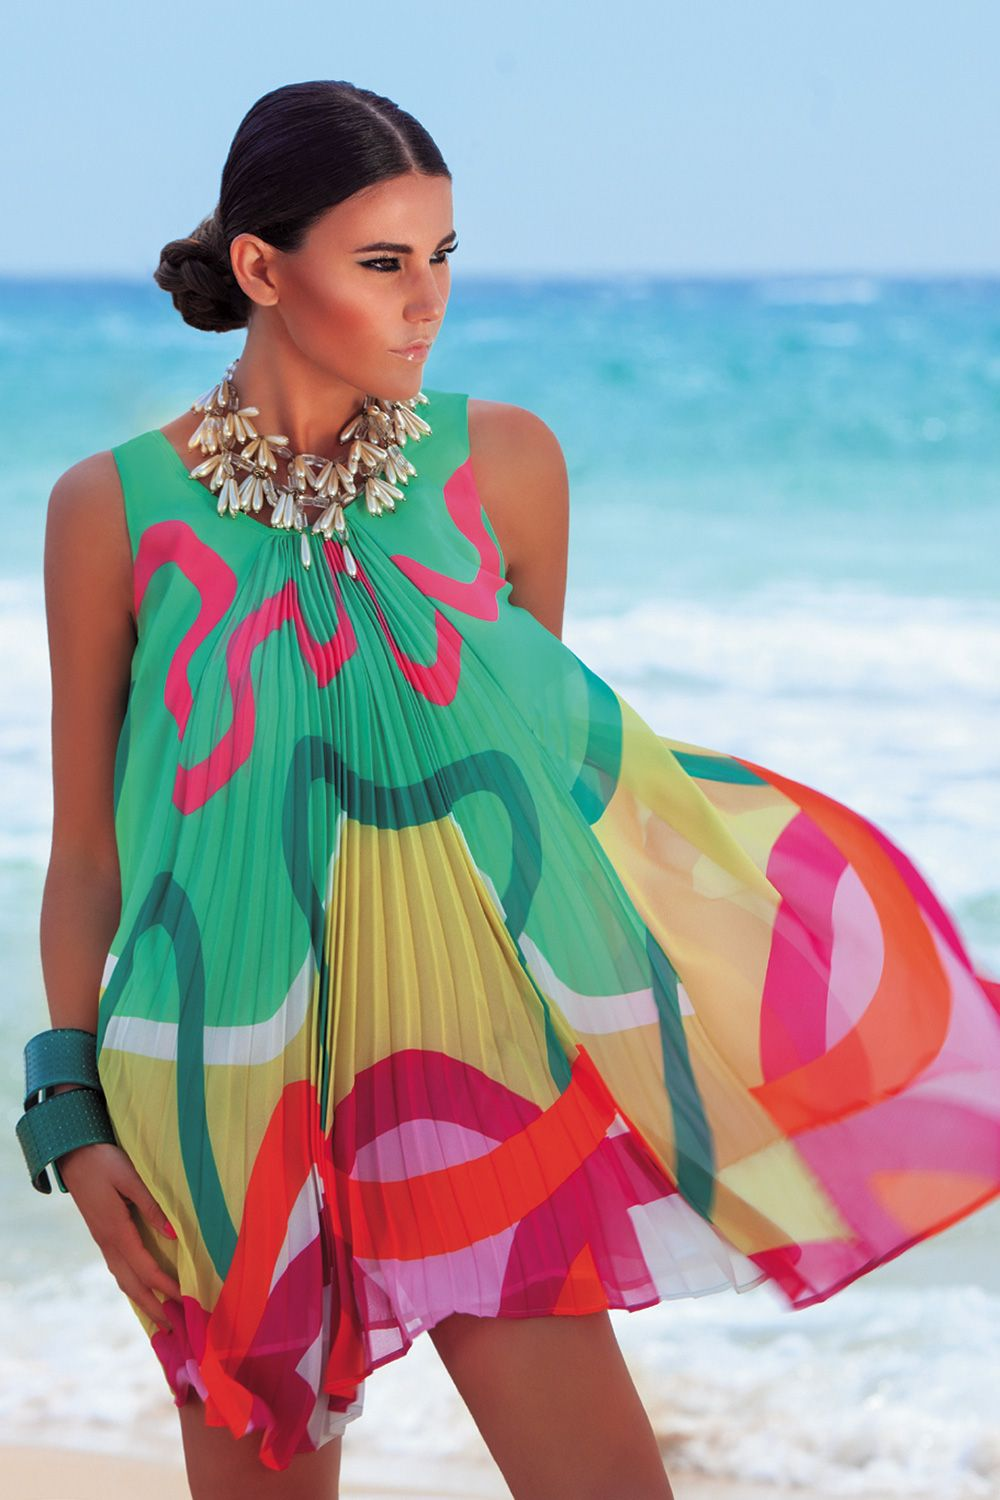 Bright Print Pleated Beach Dress Tunic Available Exclusively In The Uk At Www Lilylola  C B Beach Cover Upssleeveless